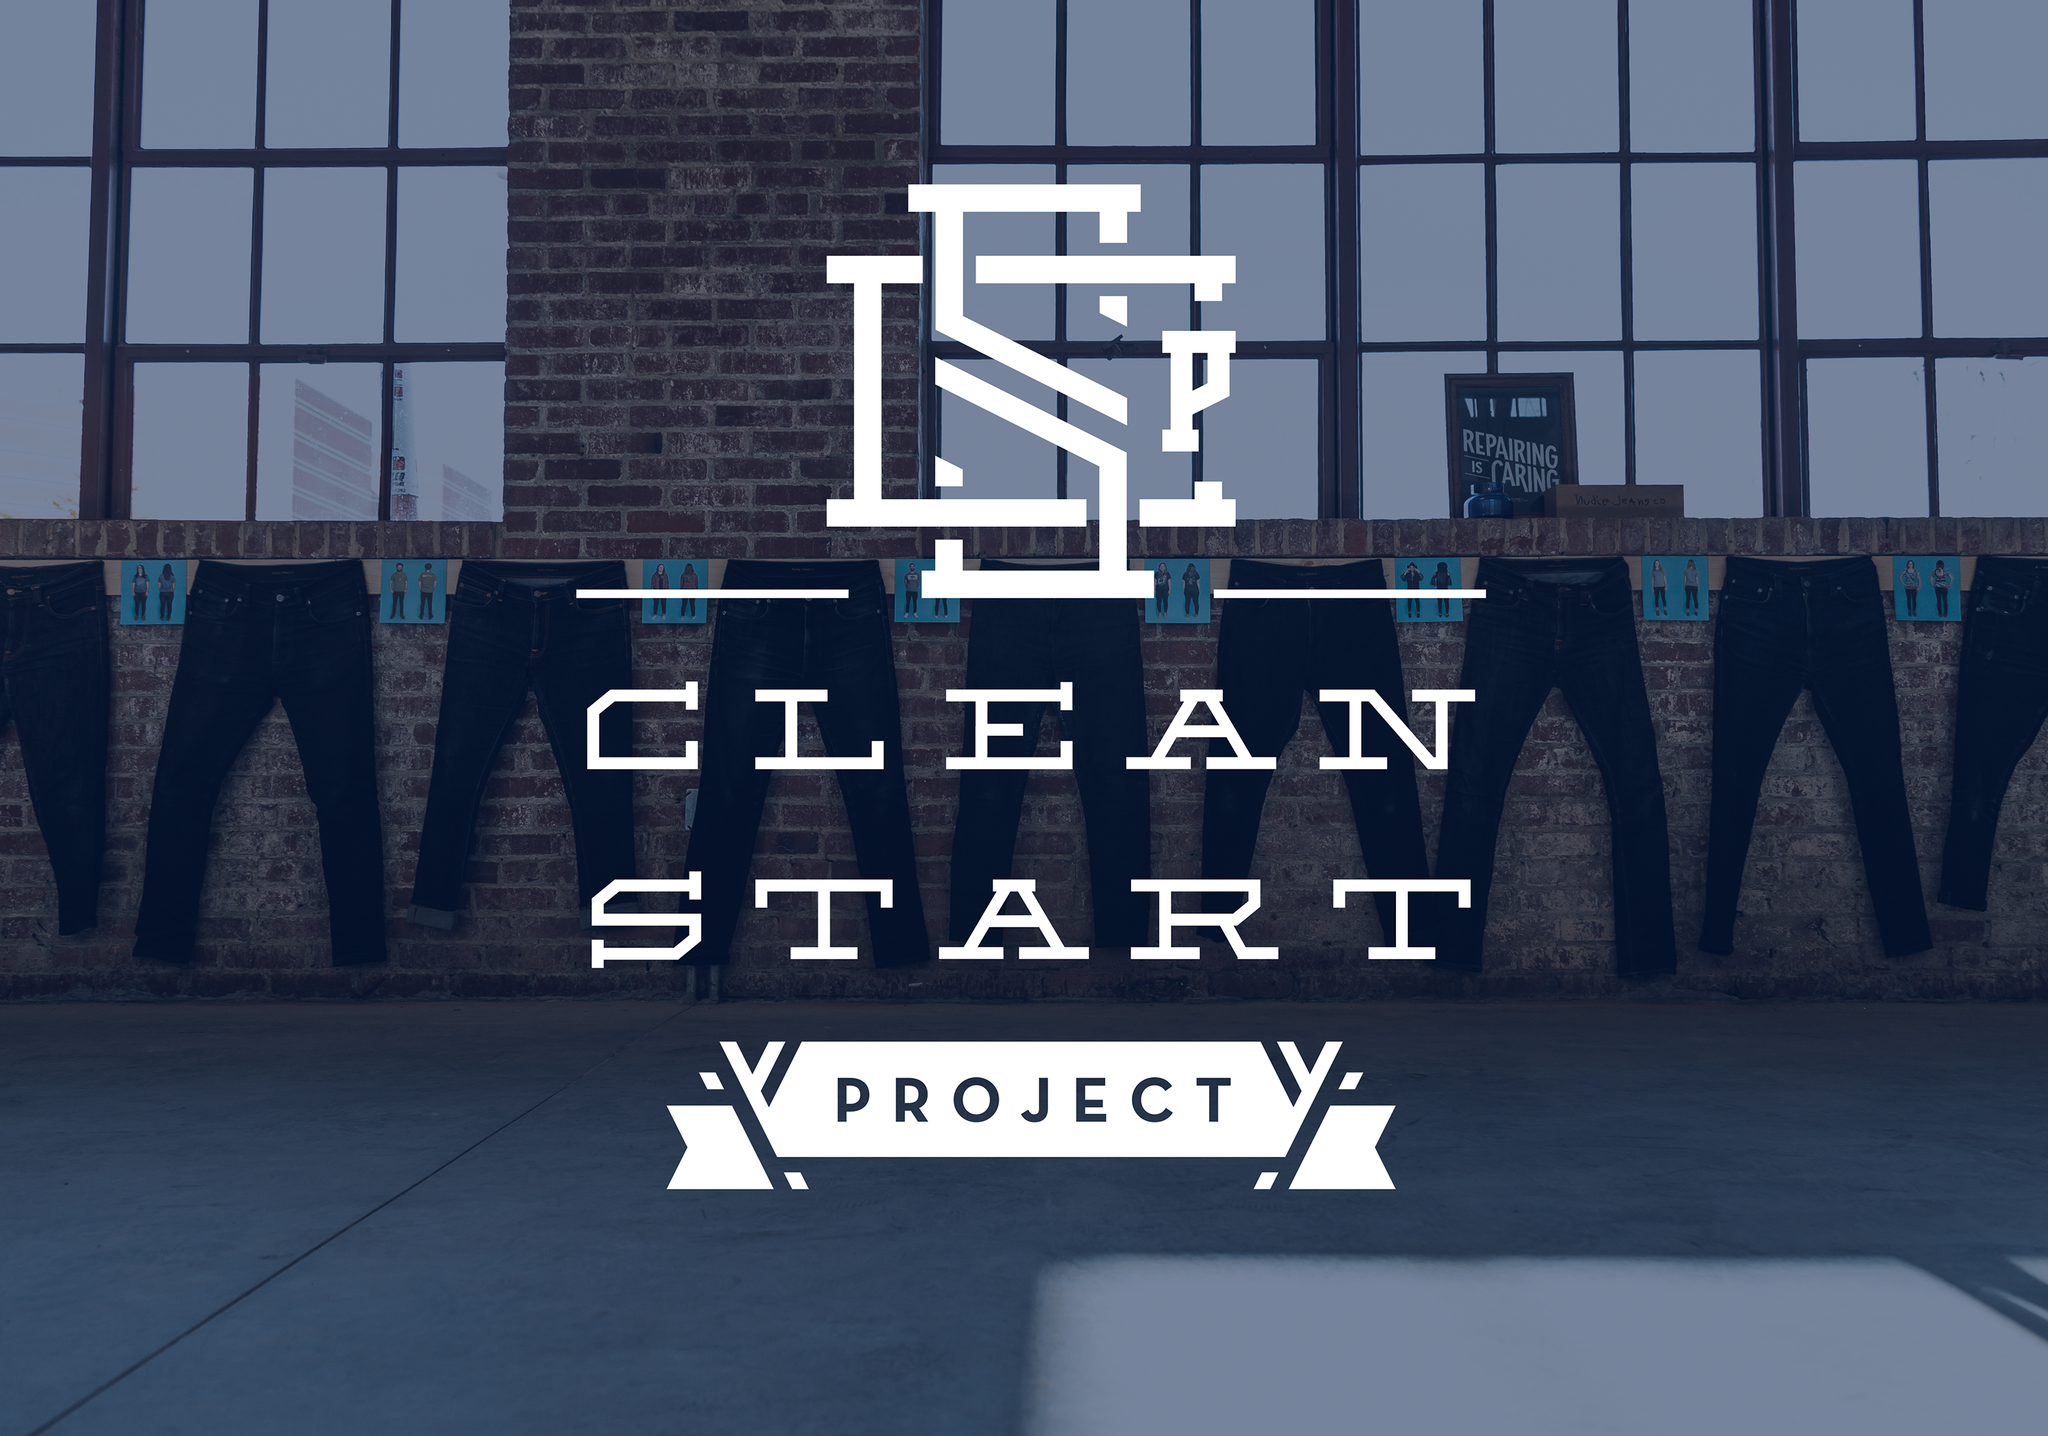 The Clean Start Project 2016-2017 Finale Show!